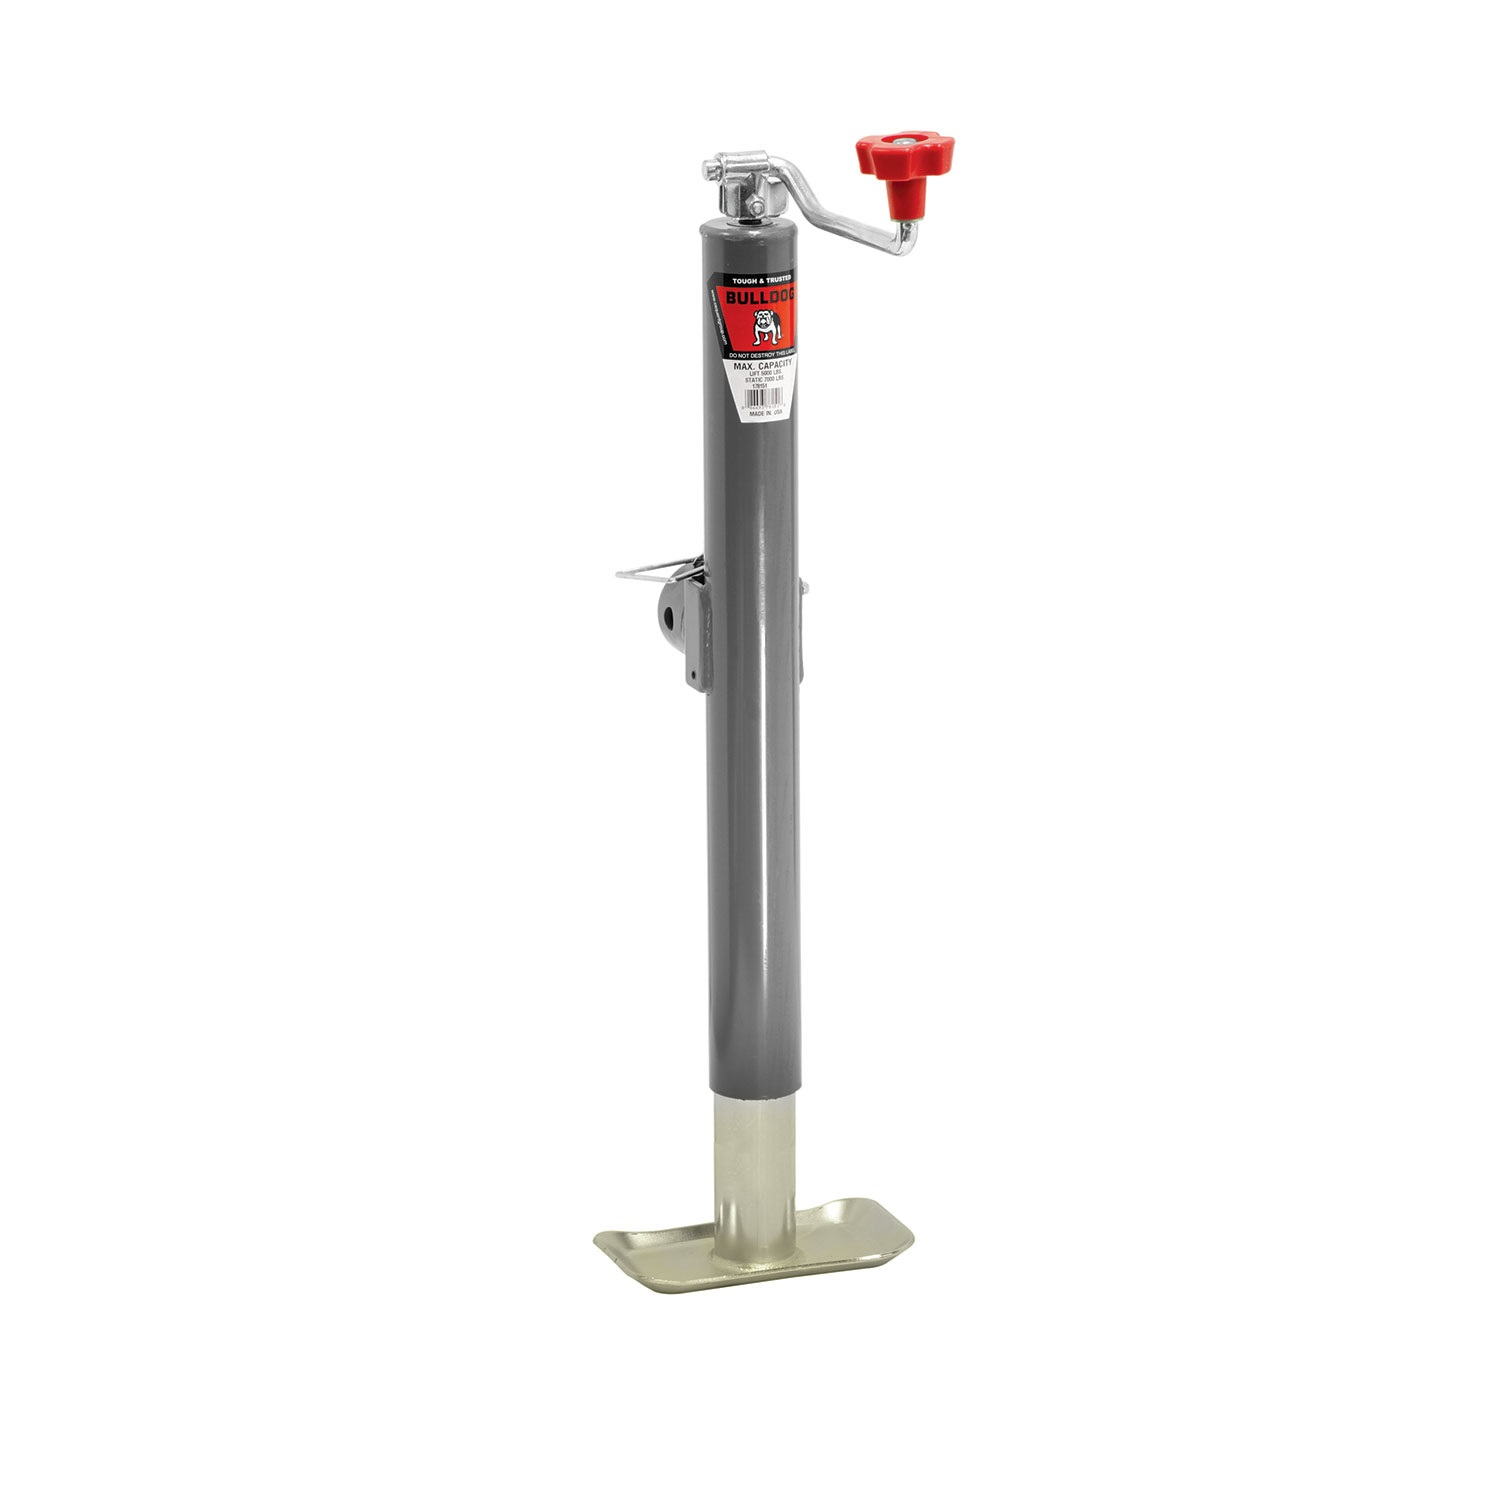 Bulldog 178151 Trailer Jack by Bulldog